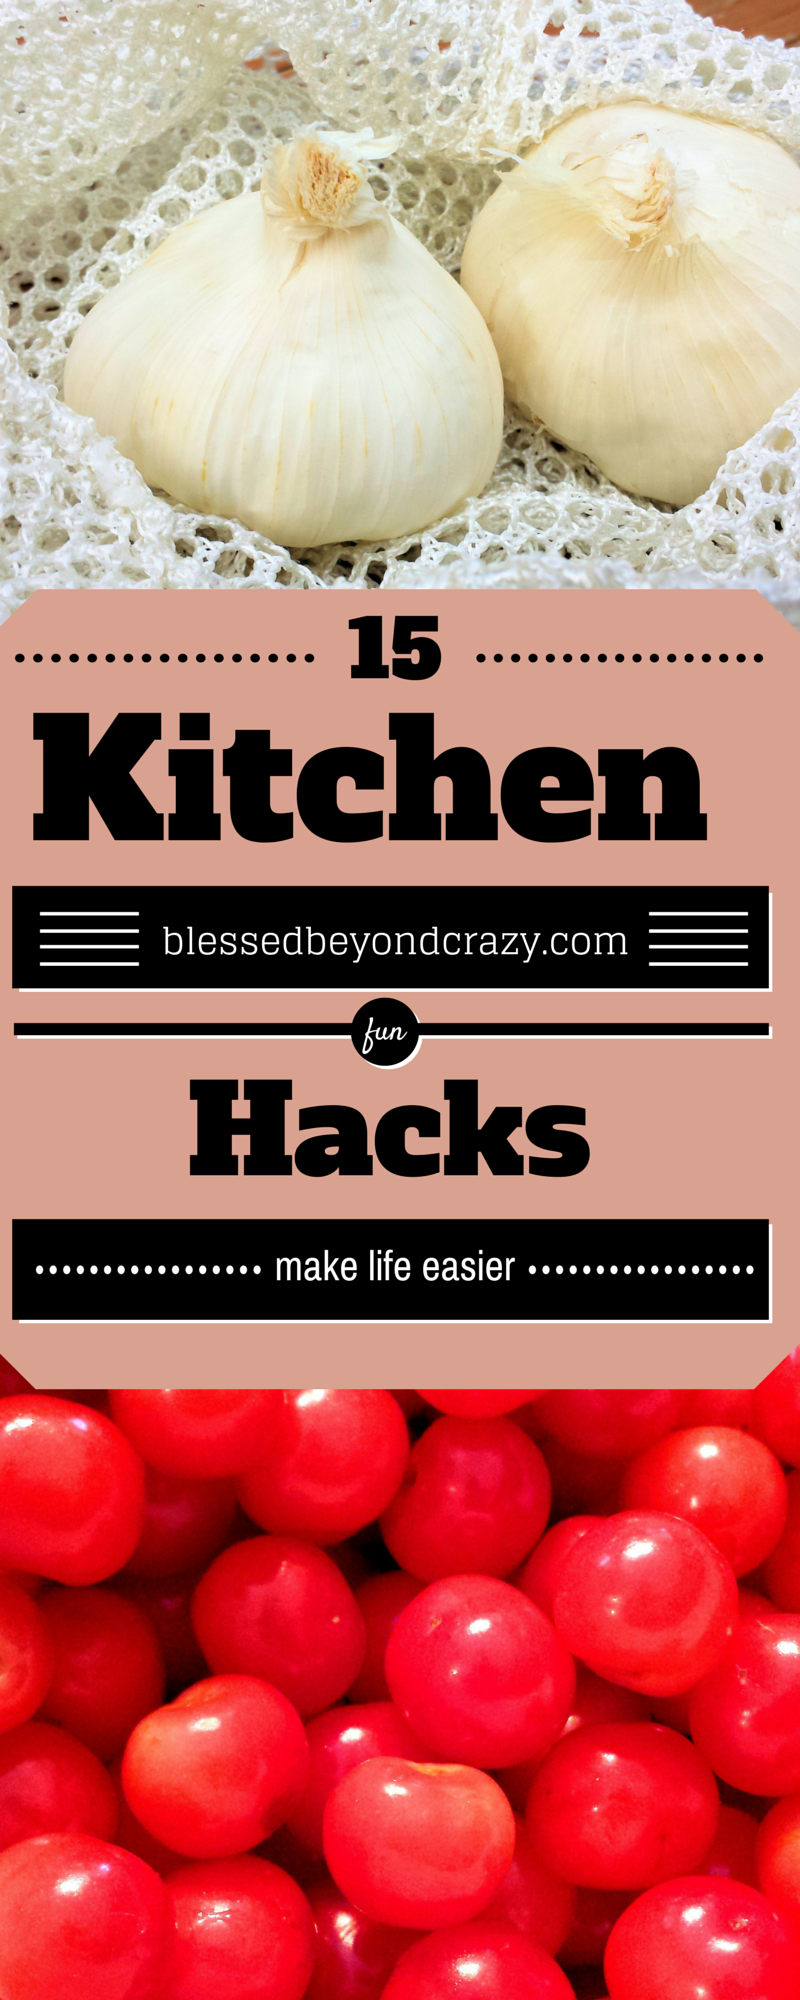 15 kitchen hacks that make life easier for 9 kitchen life hacks